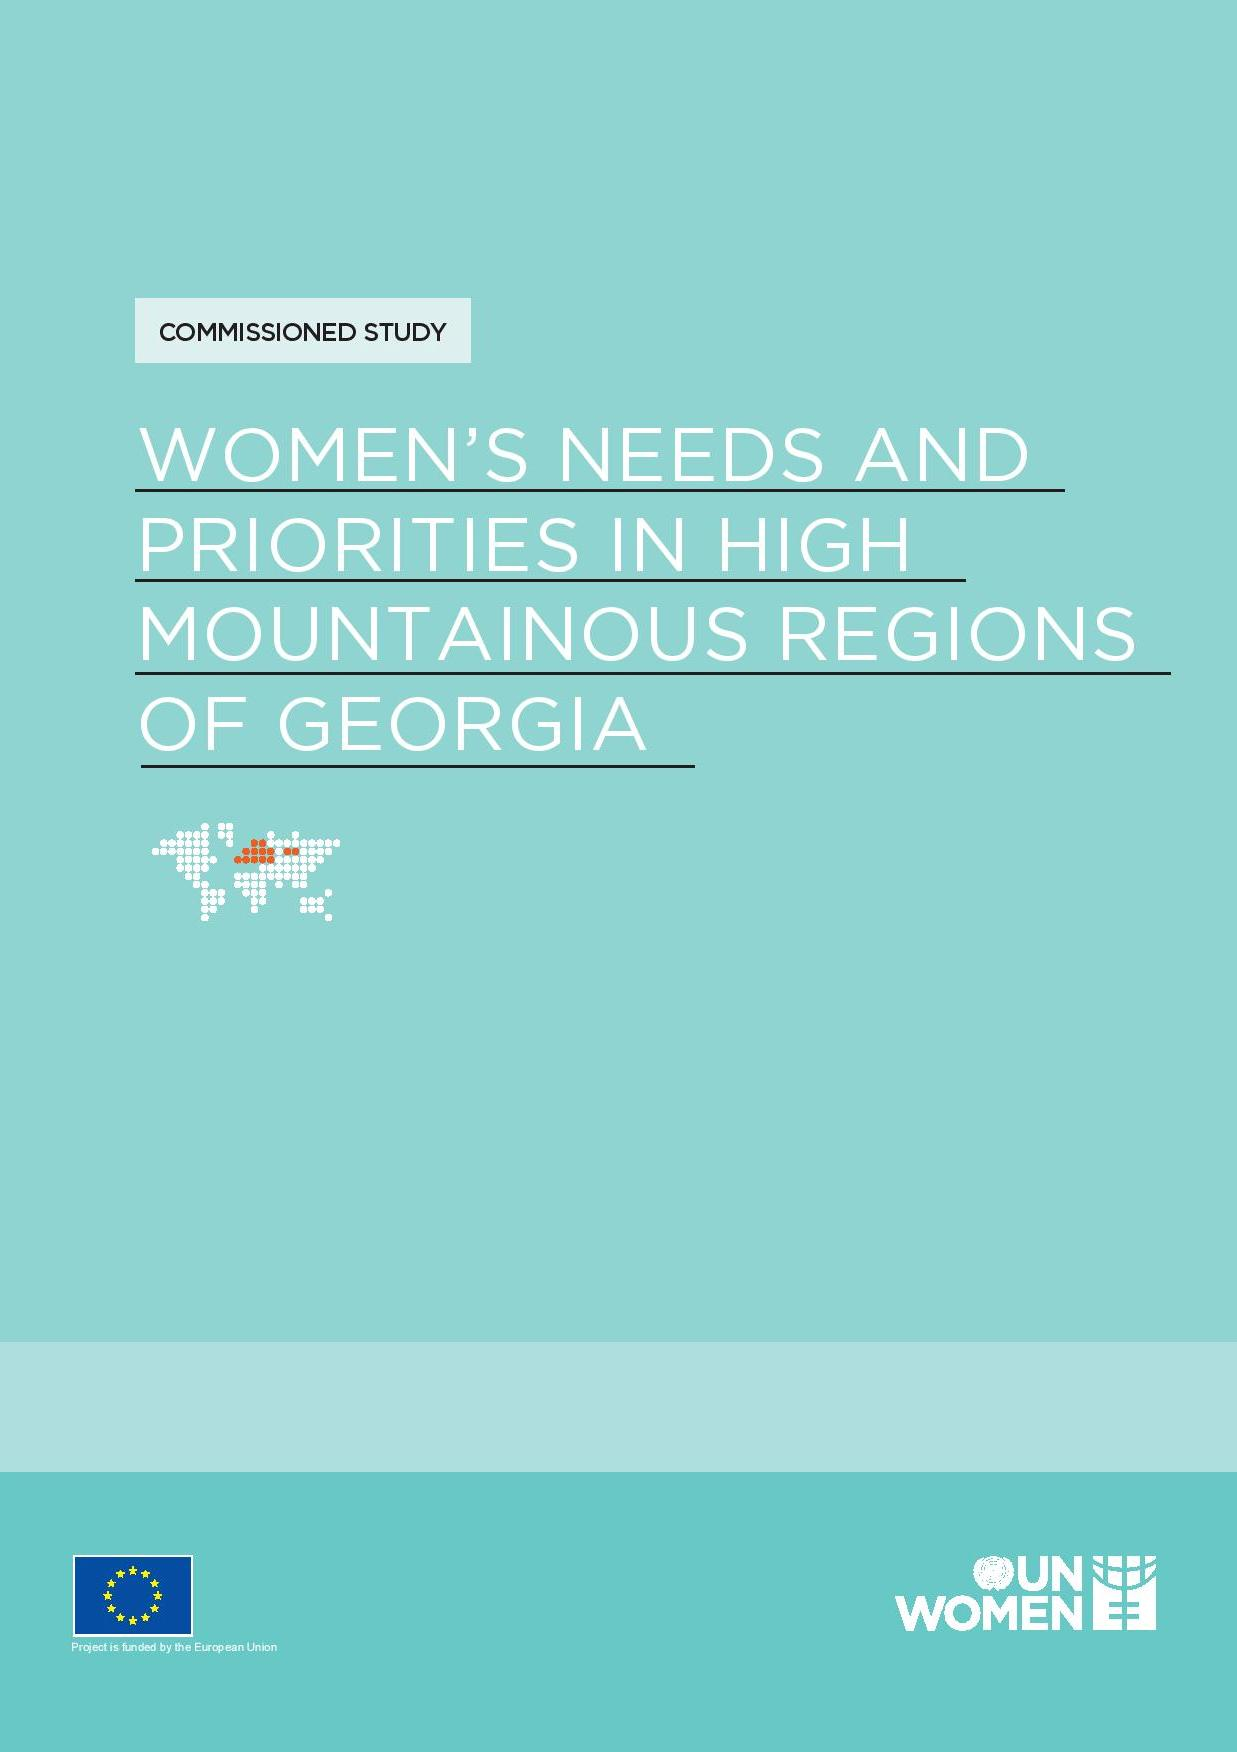 Women's Needs and Priorities in High Mountainous Regions of Georgia